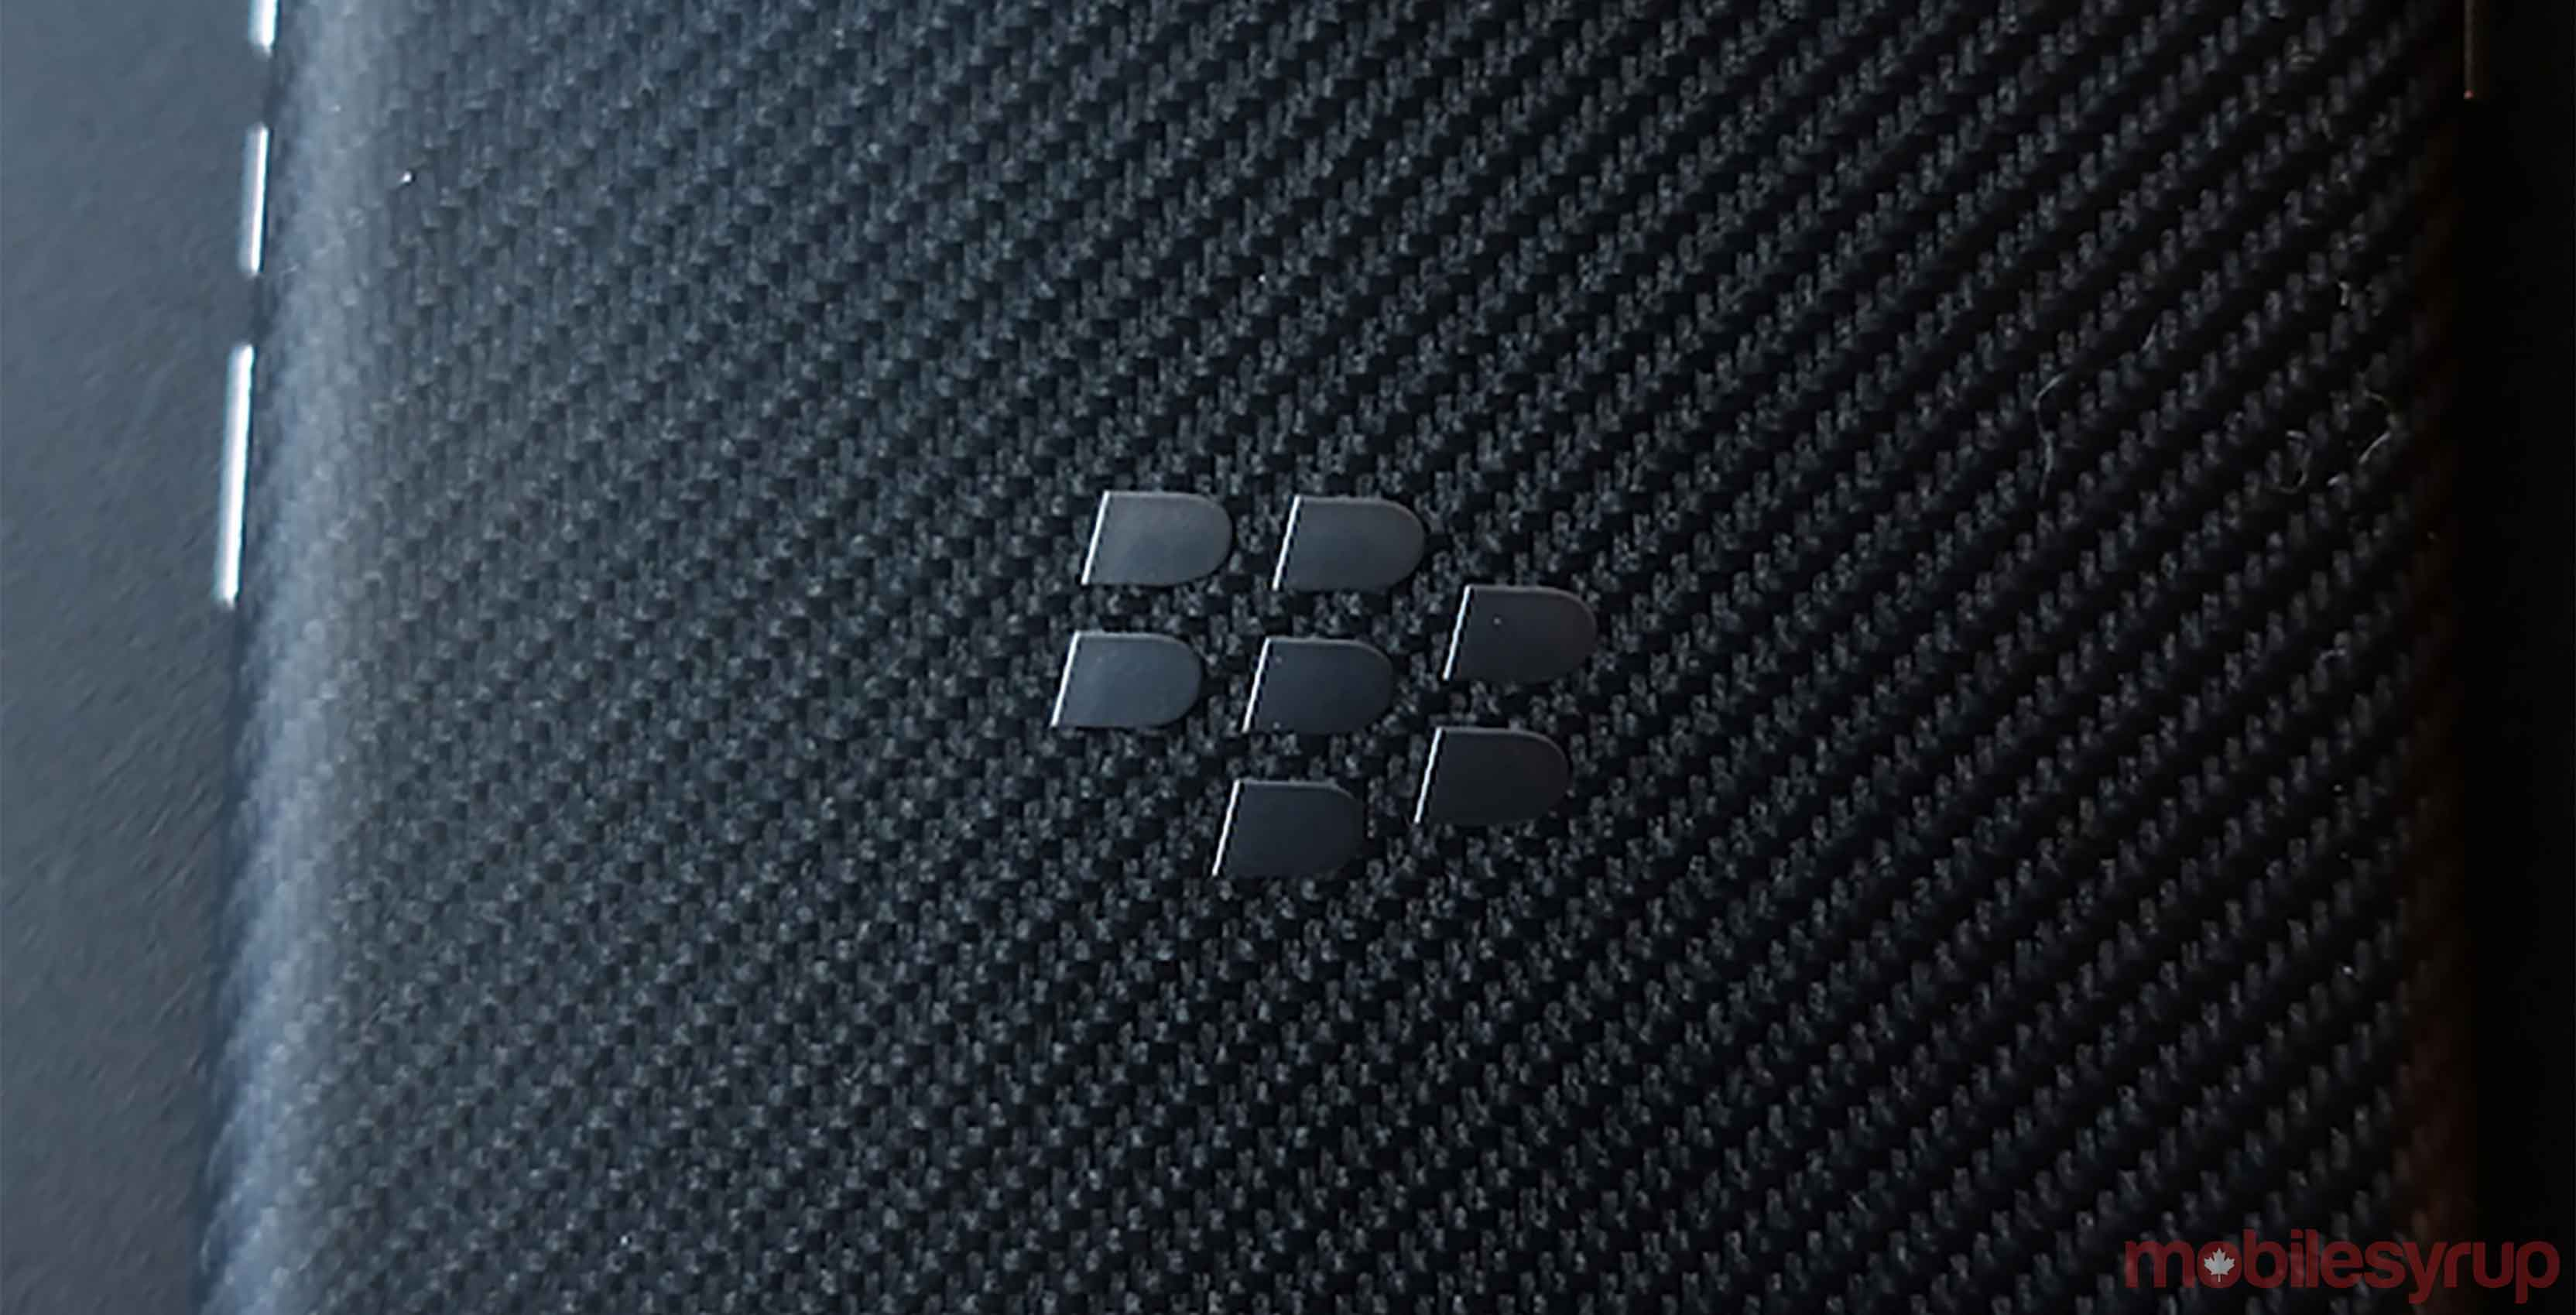 BlackBerry Allied World partnership